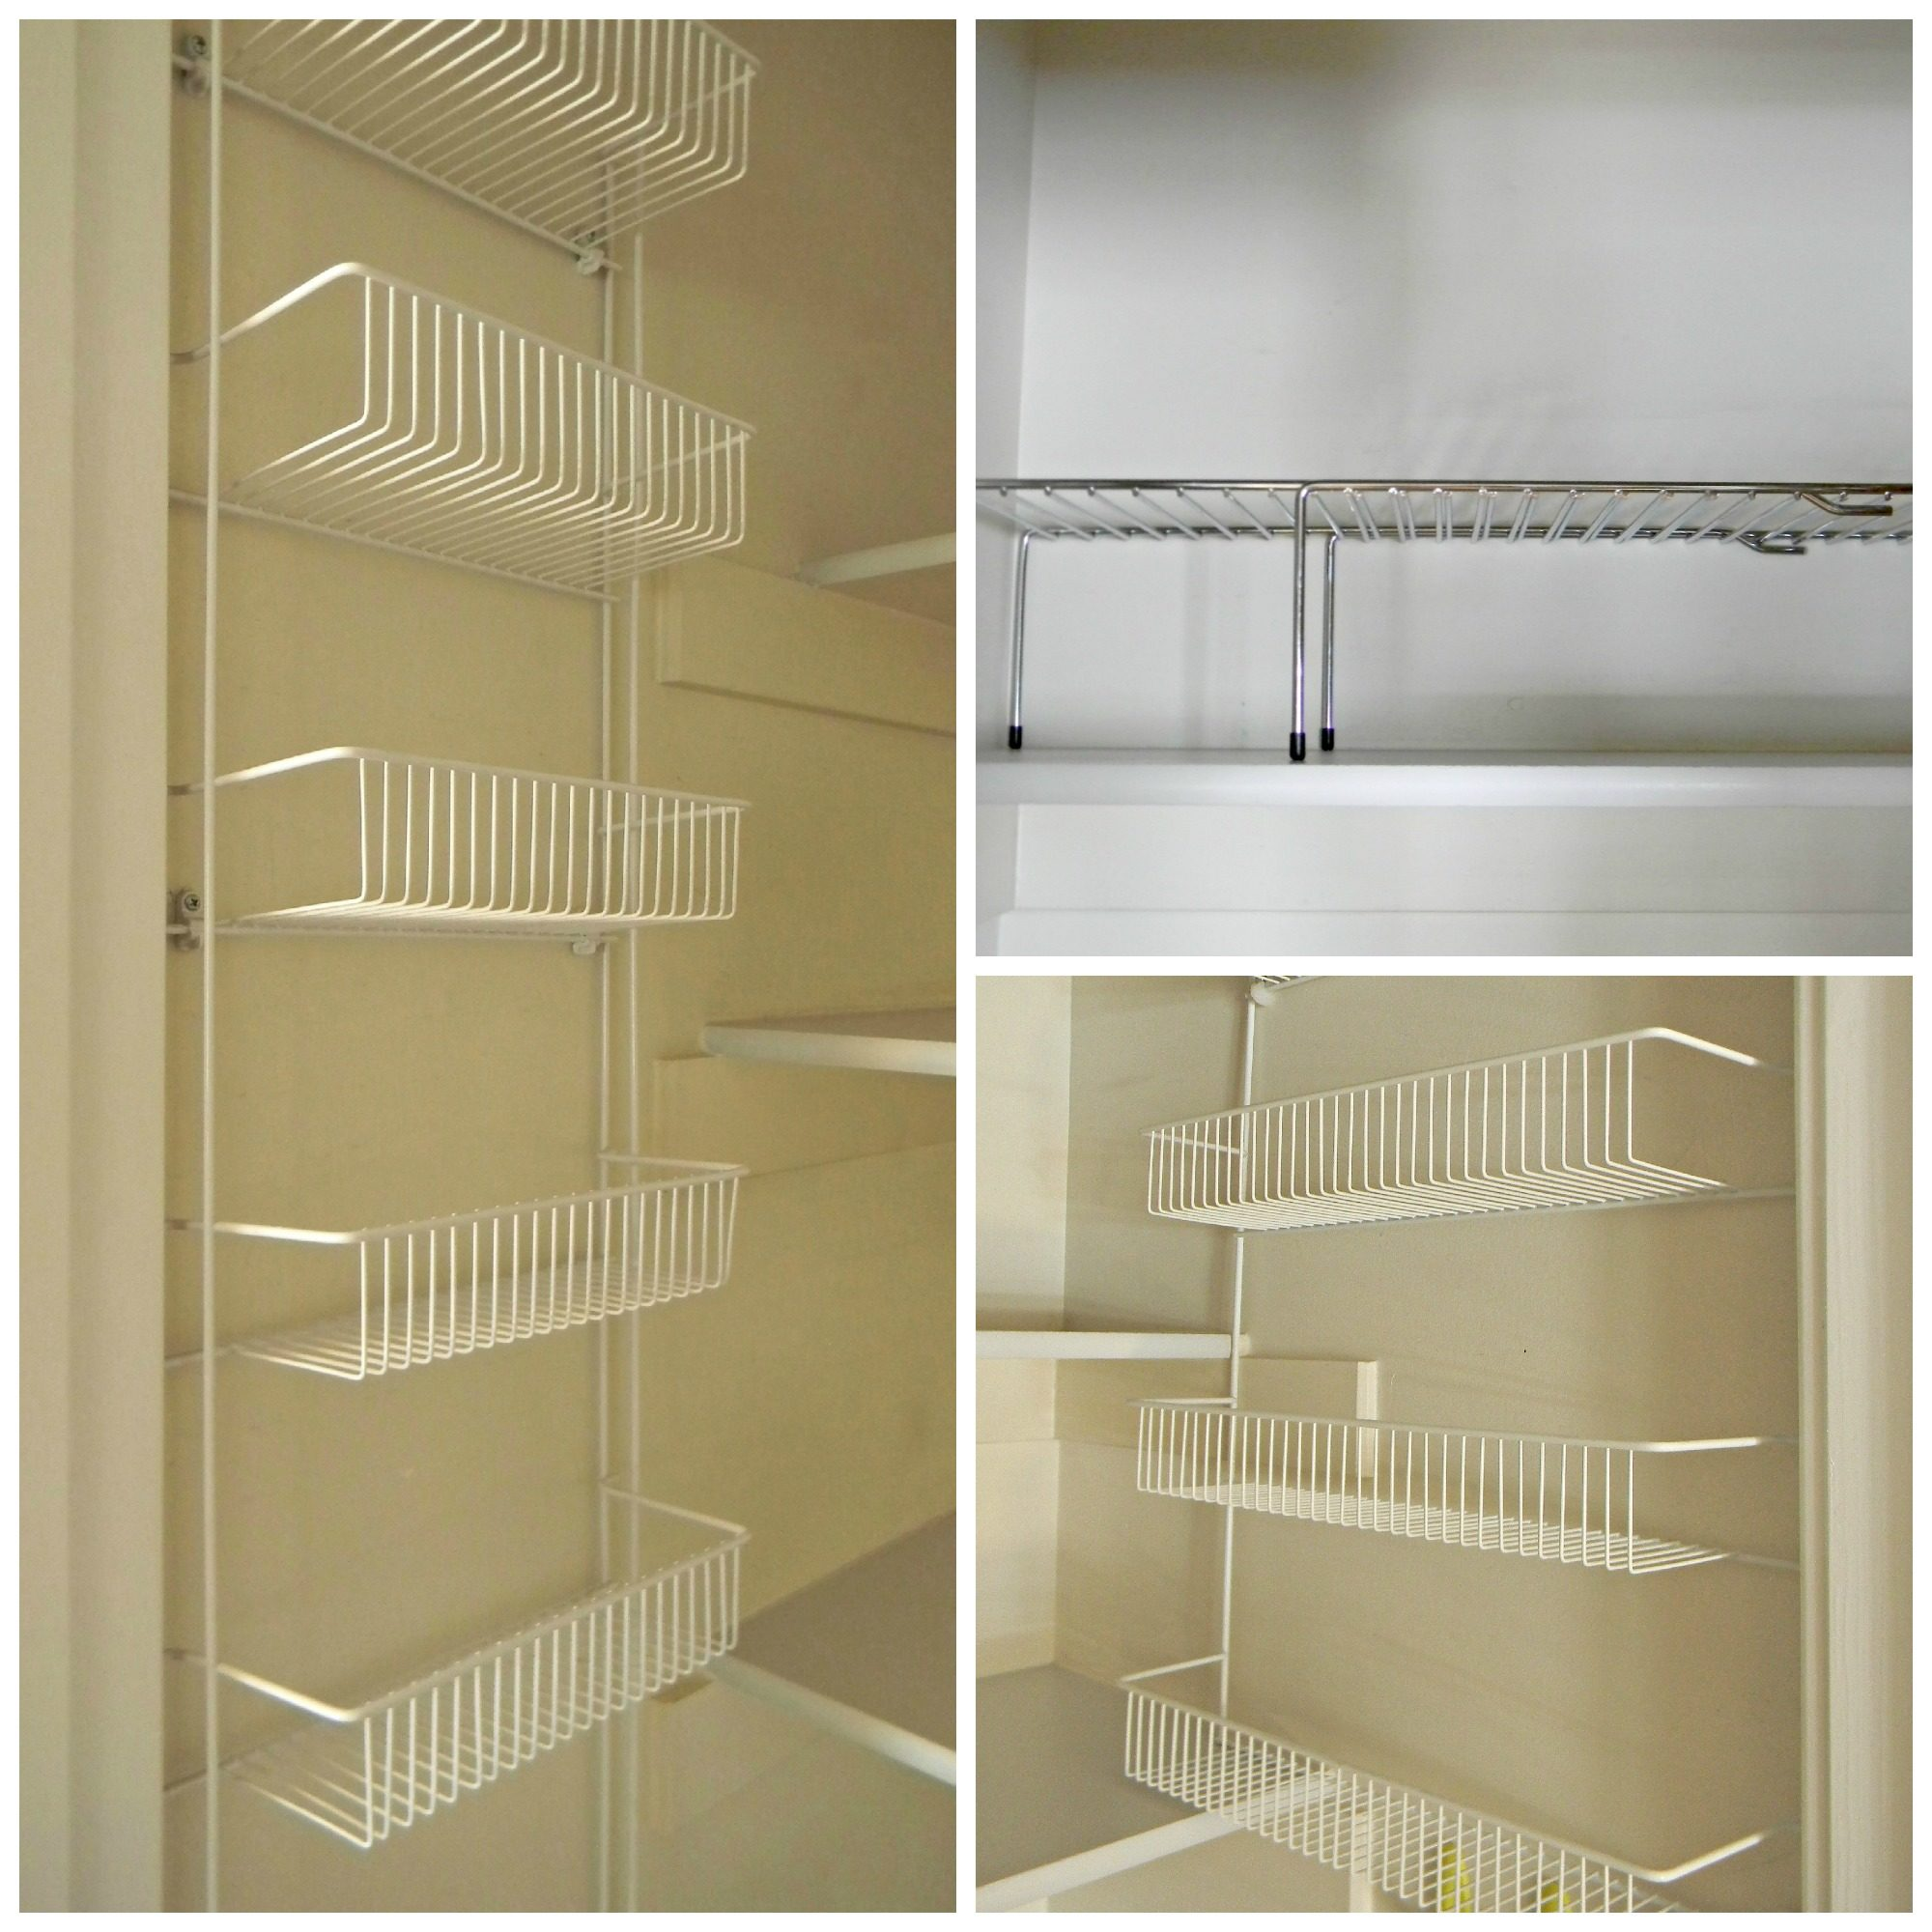 Small pantry shelving systems